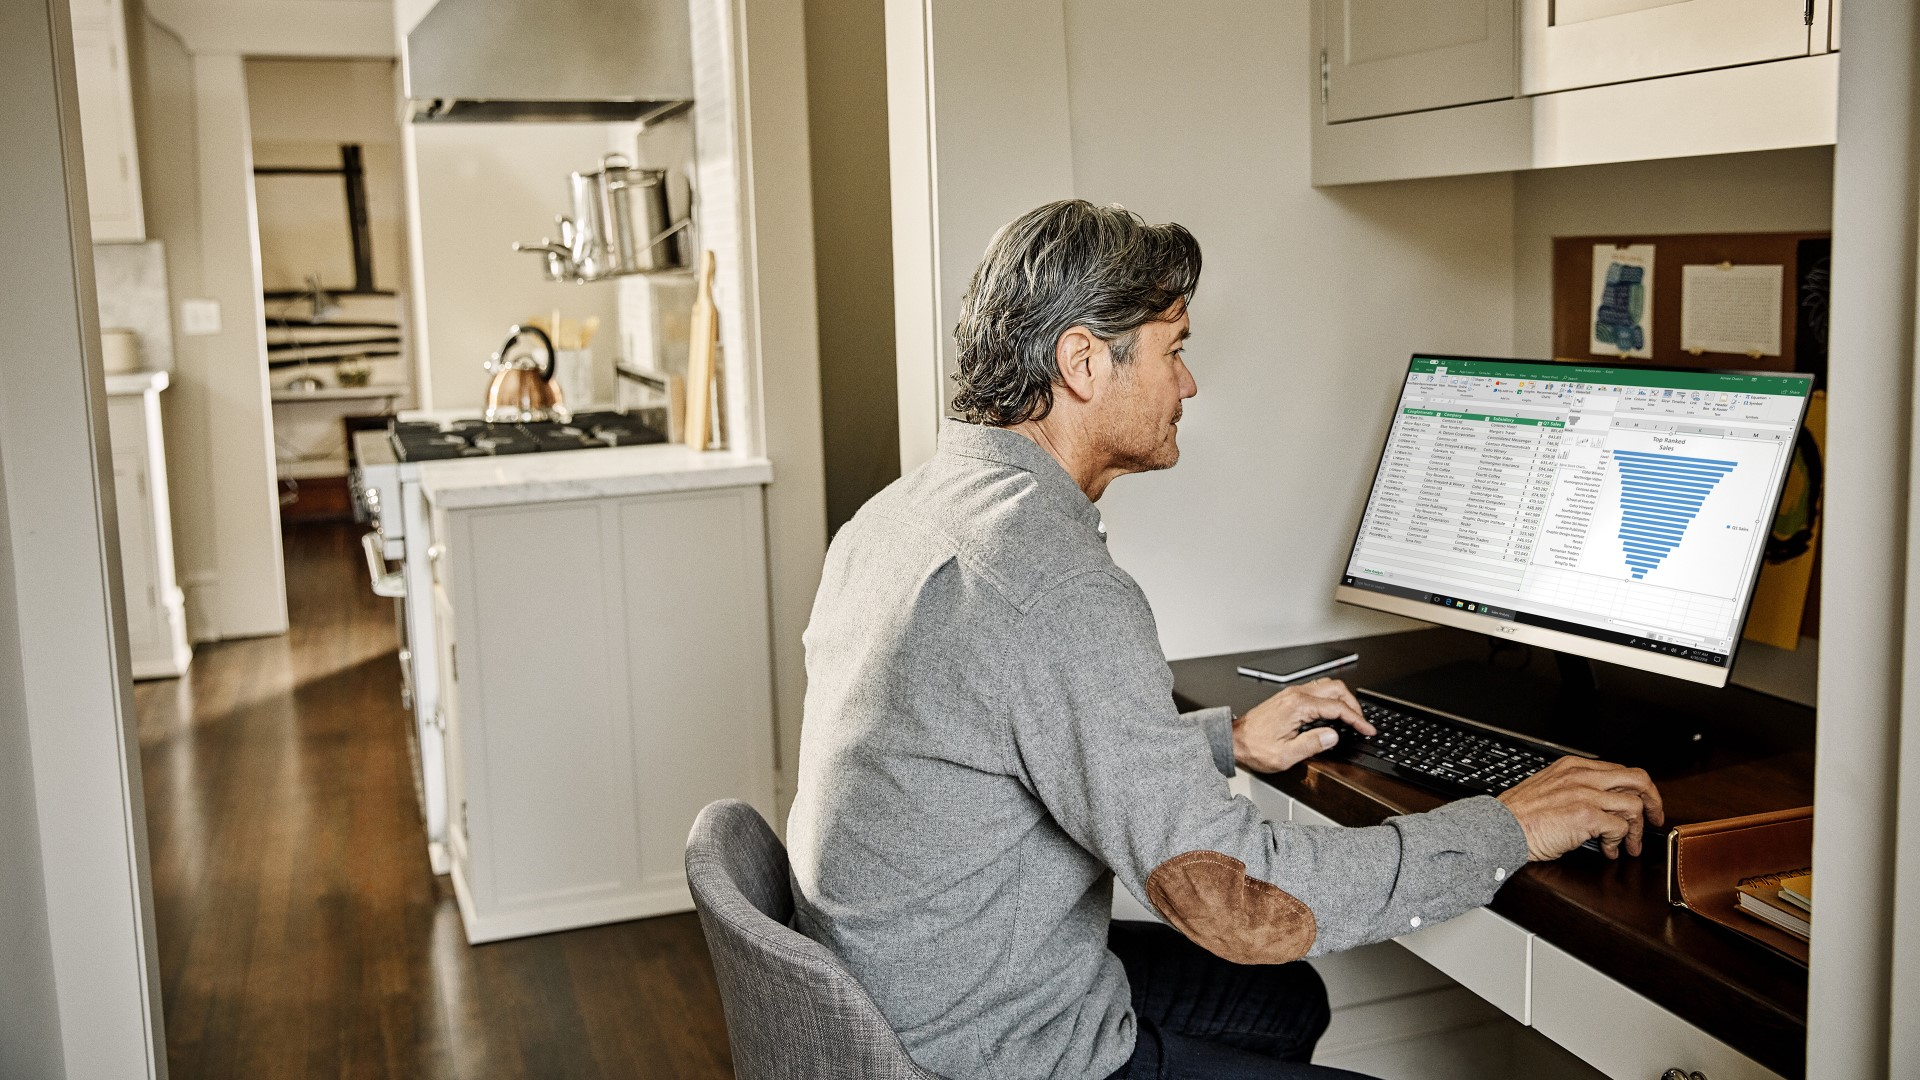 7 Best Business Ideas to Start From Home In 2020 | Business